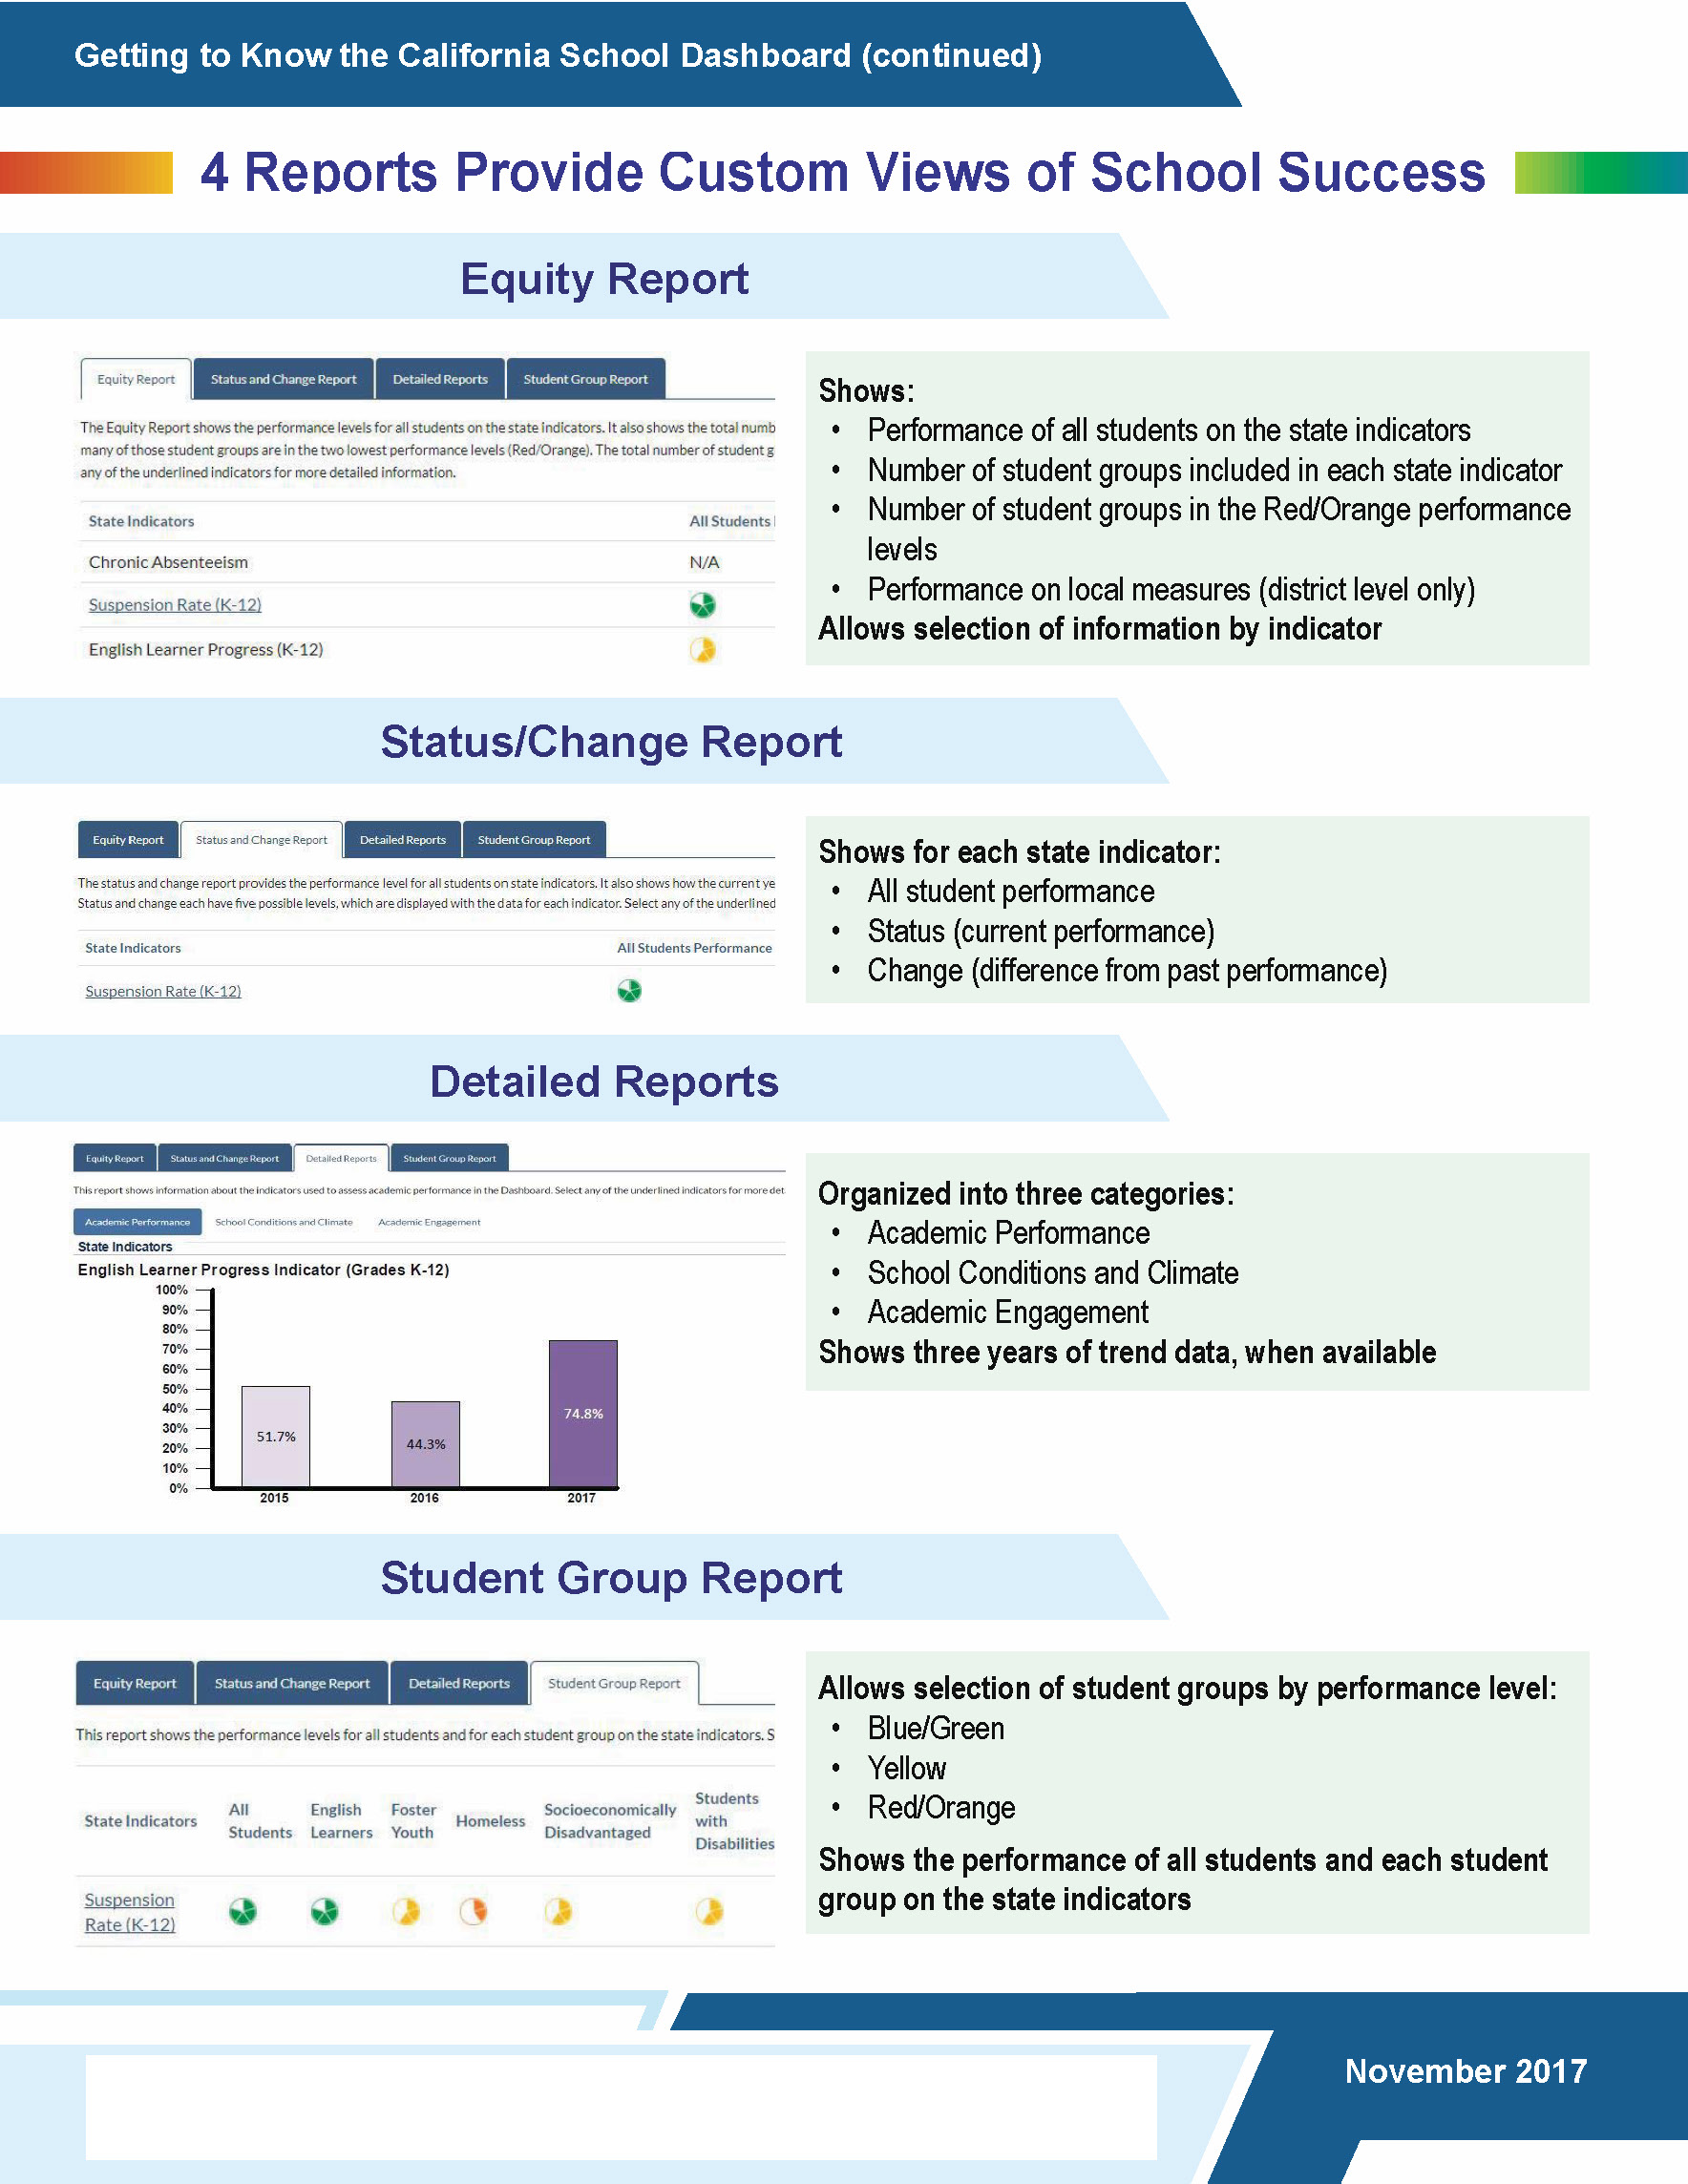 Getting to Know the California School Dashboard Pg 2